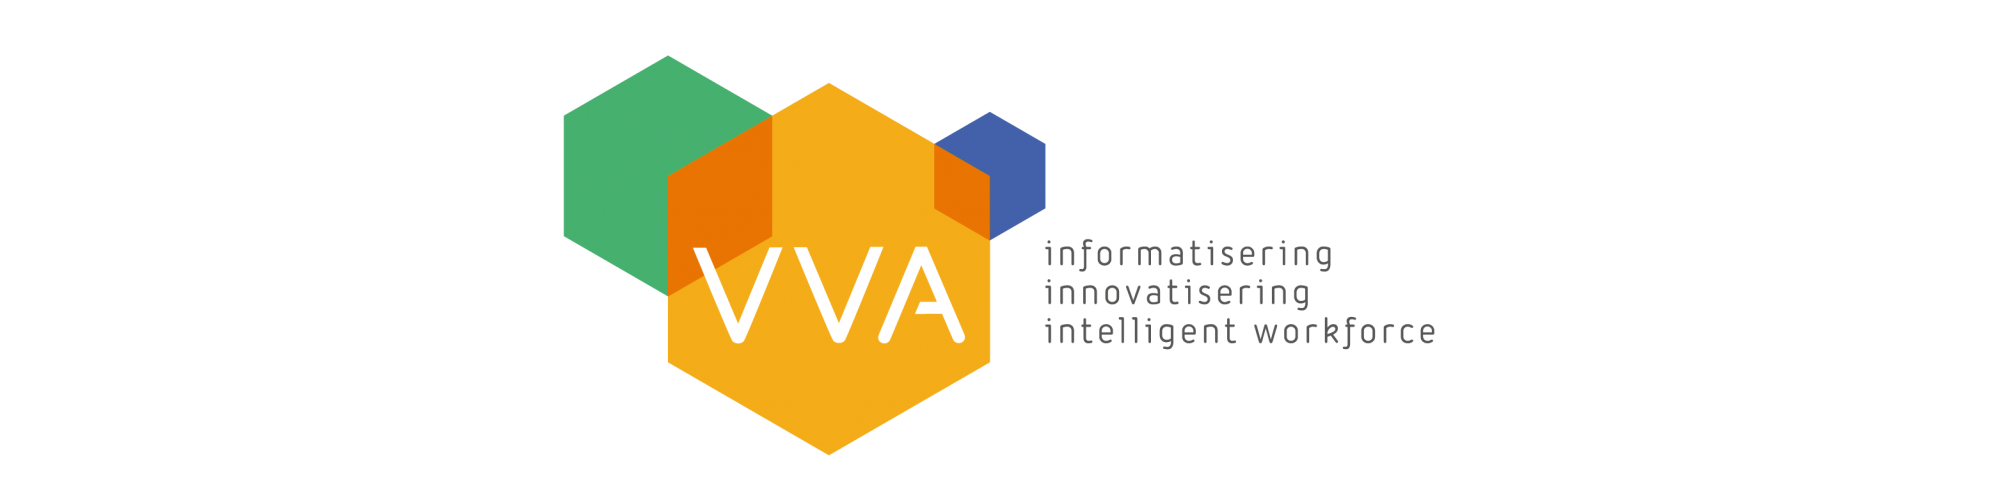 VVA Combinatie Logo